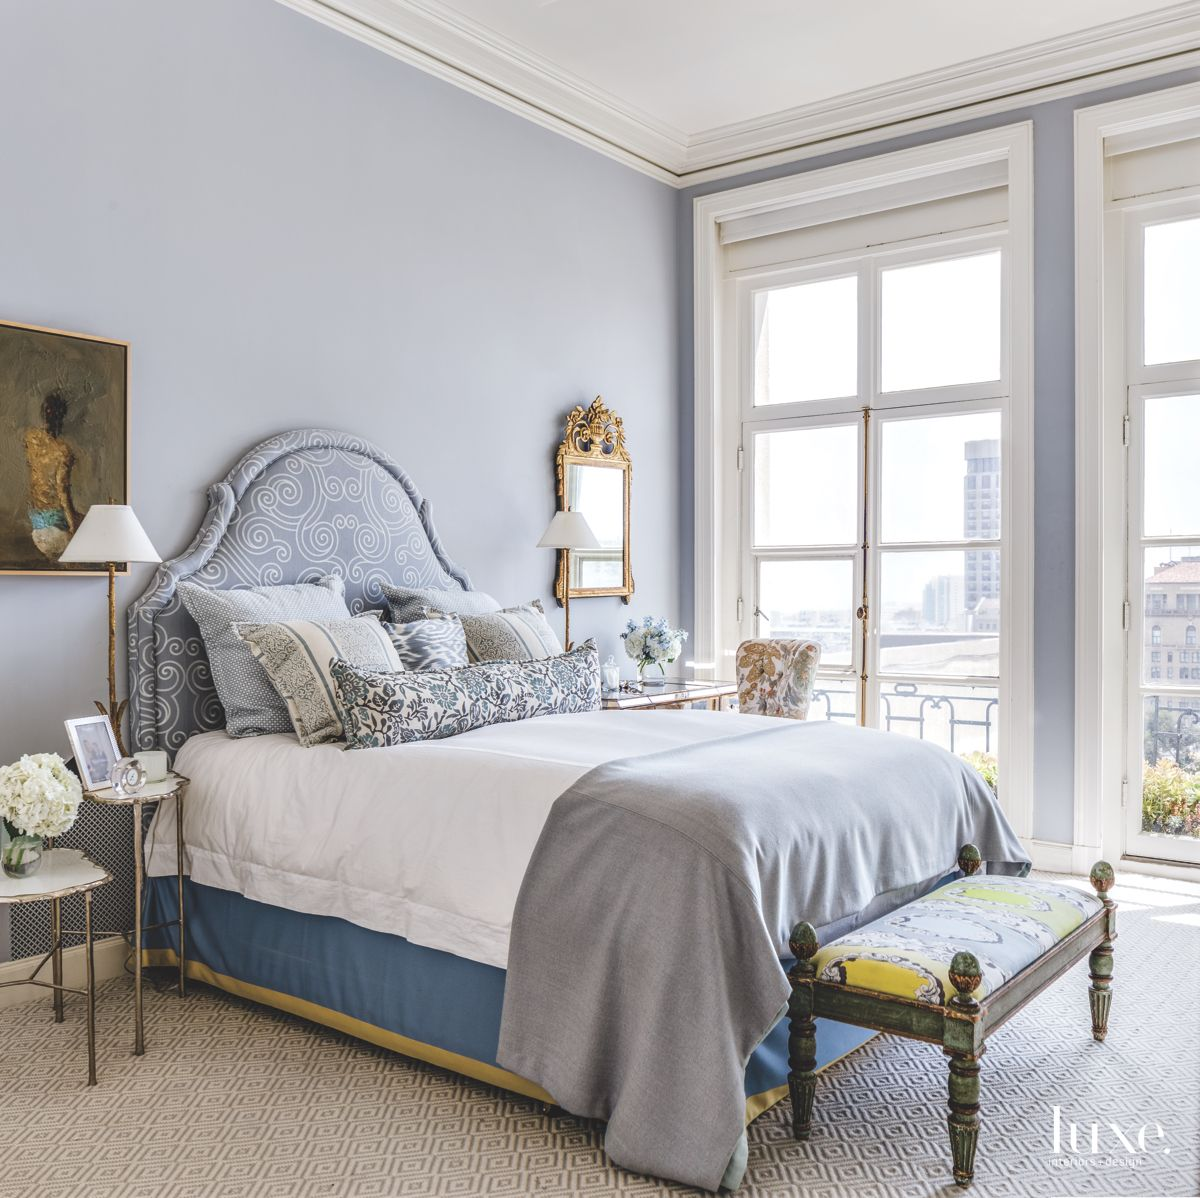 Master Bedroom of Designer's Own San Francisco Apartment Features Feminine Touches